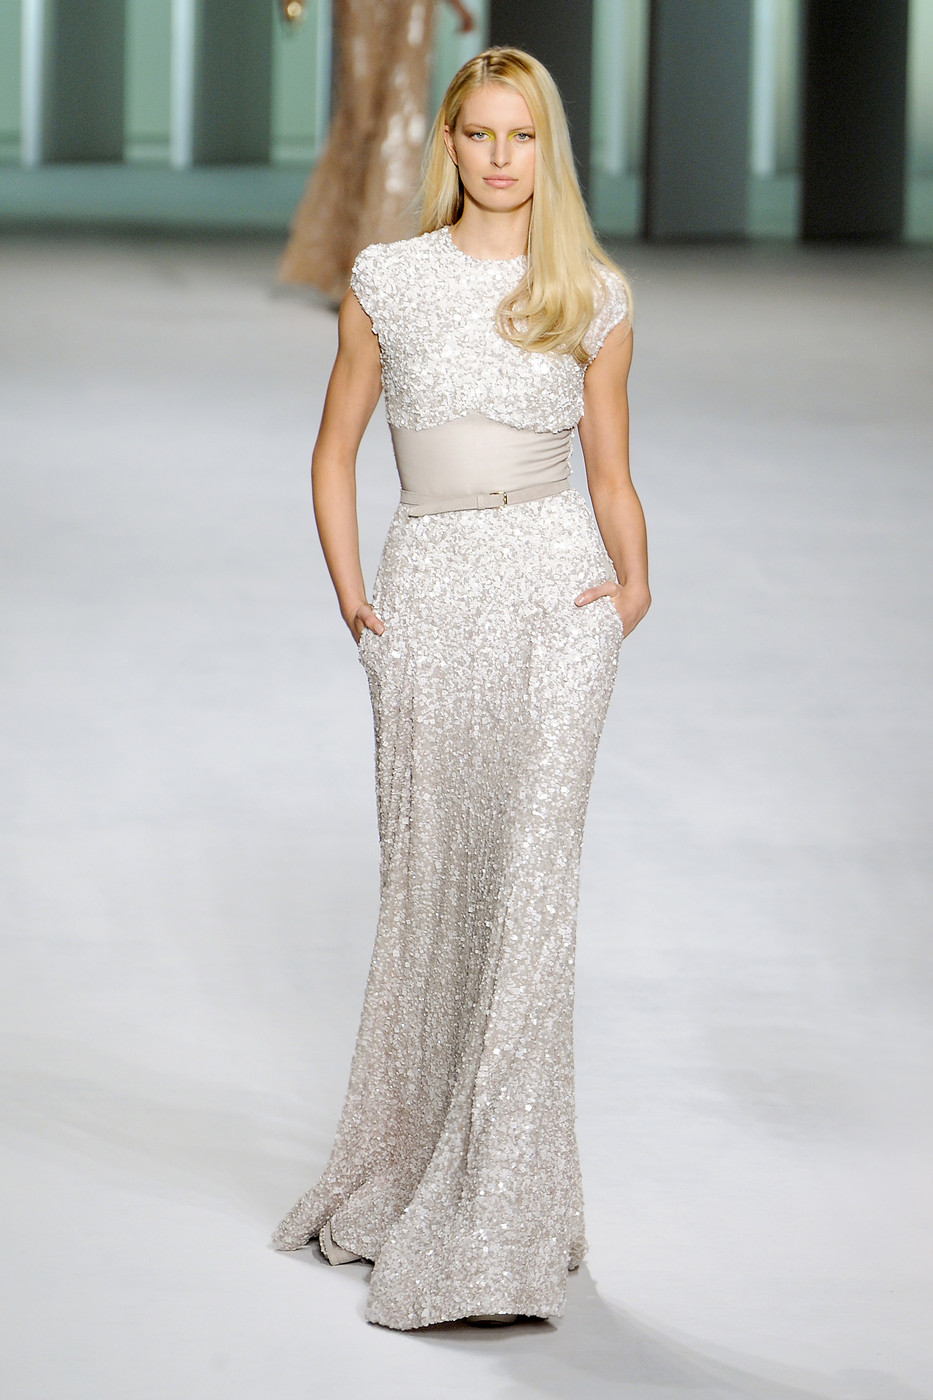 via fashioned by love | Elie Saab Spring/Summer 2011 White